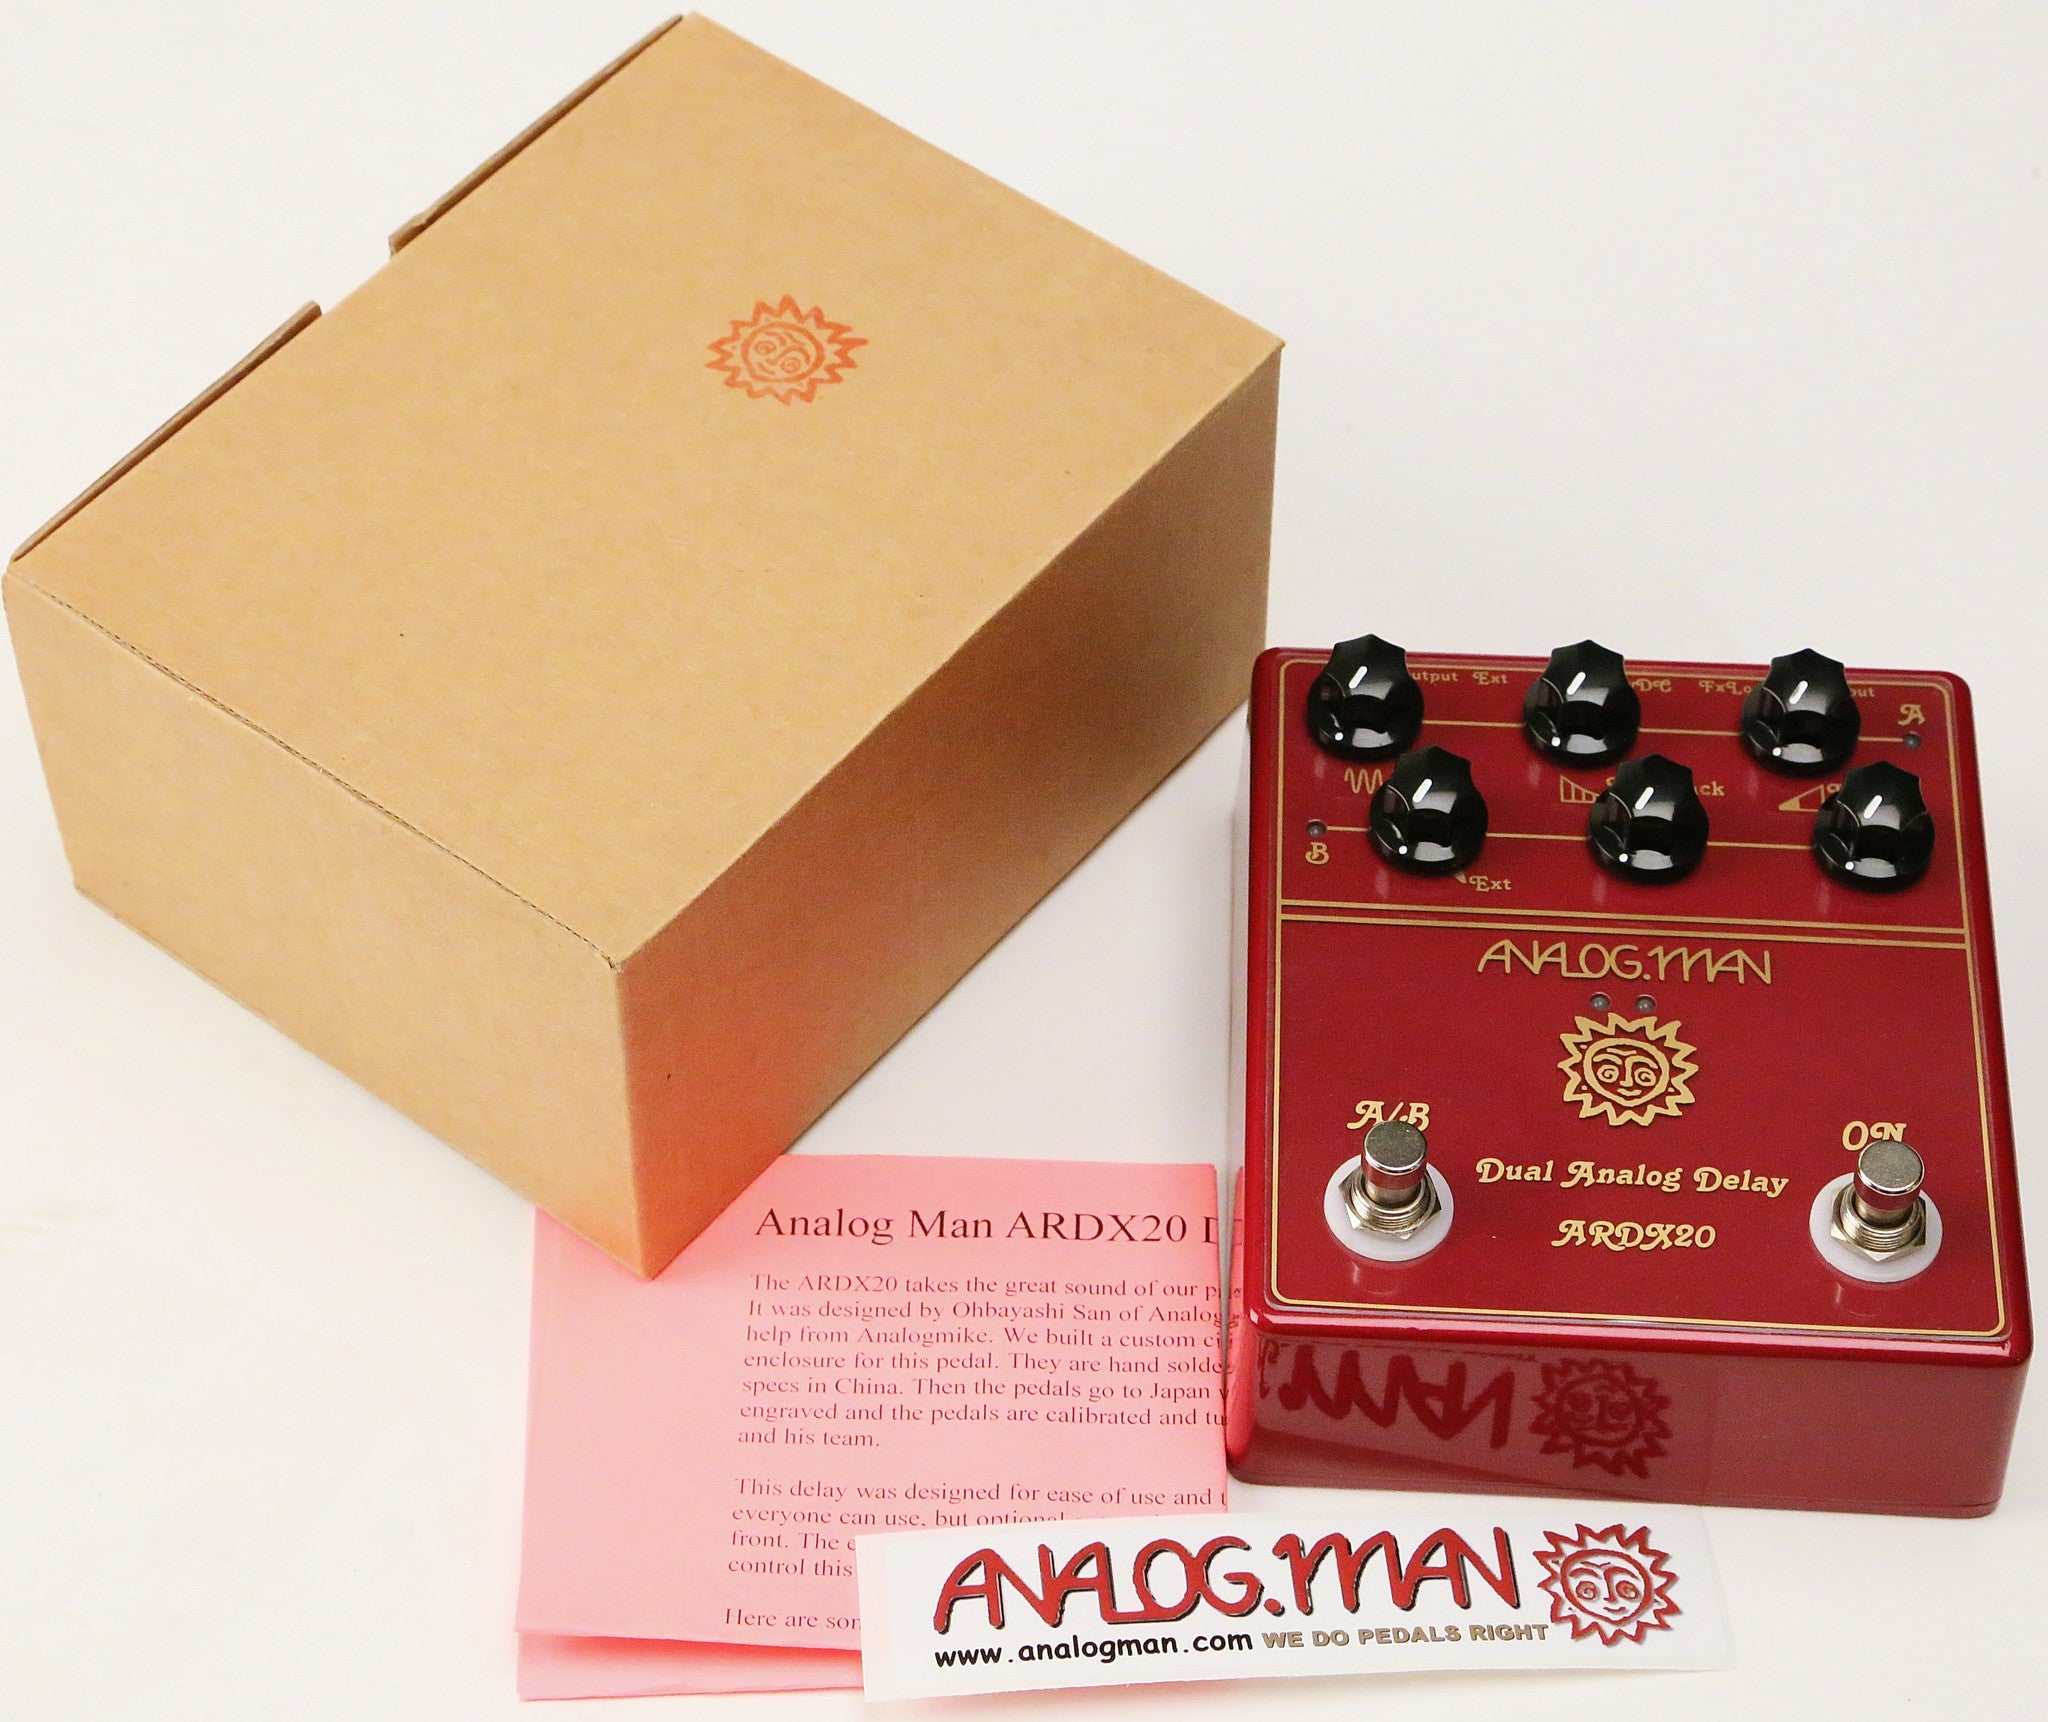 Analogman Dual Analog Delay